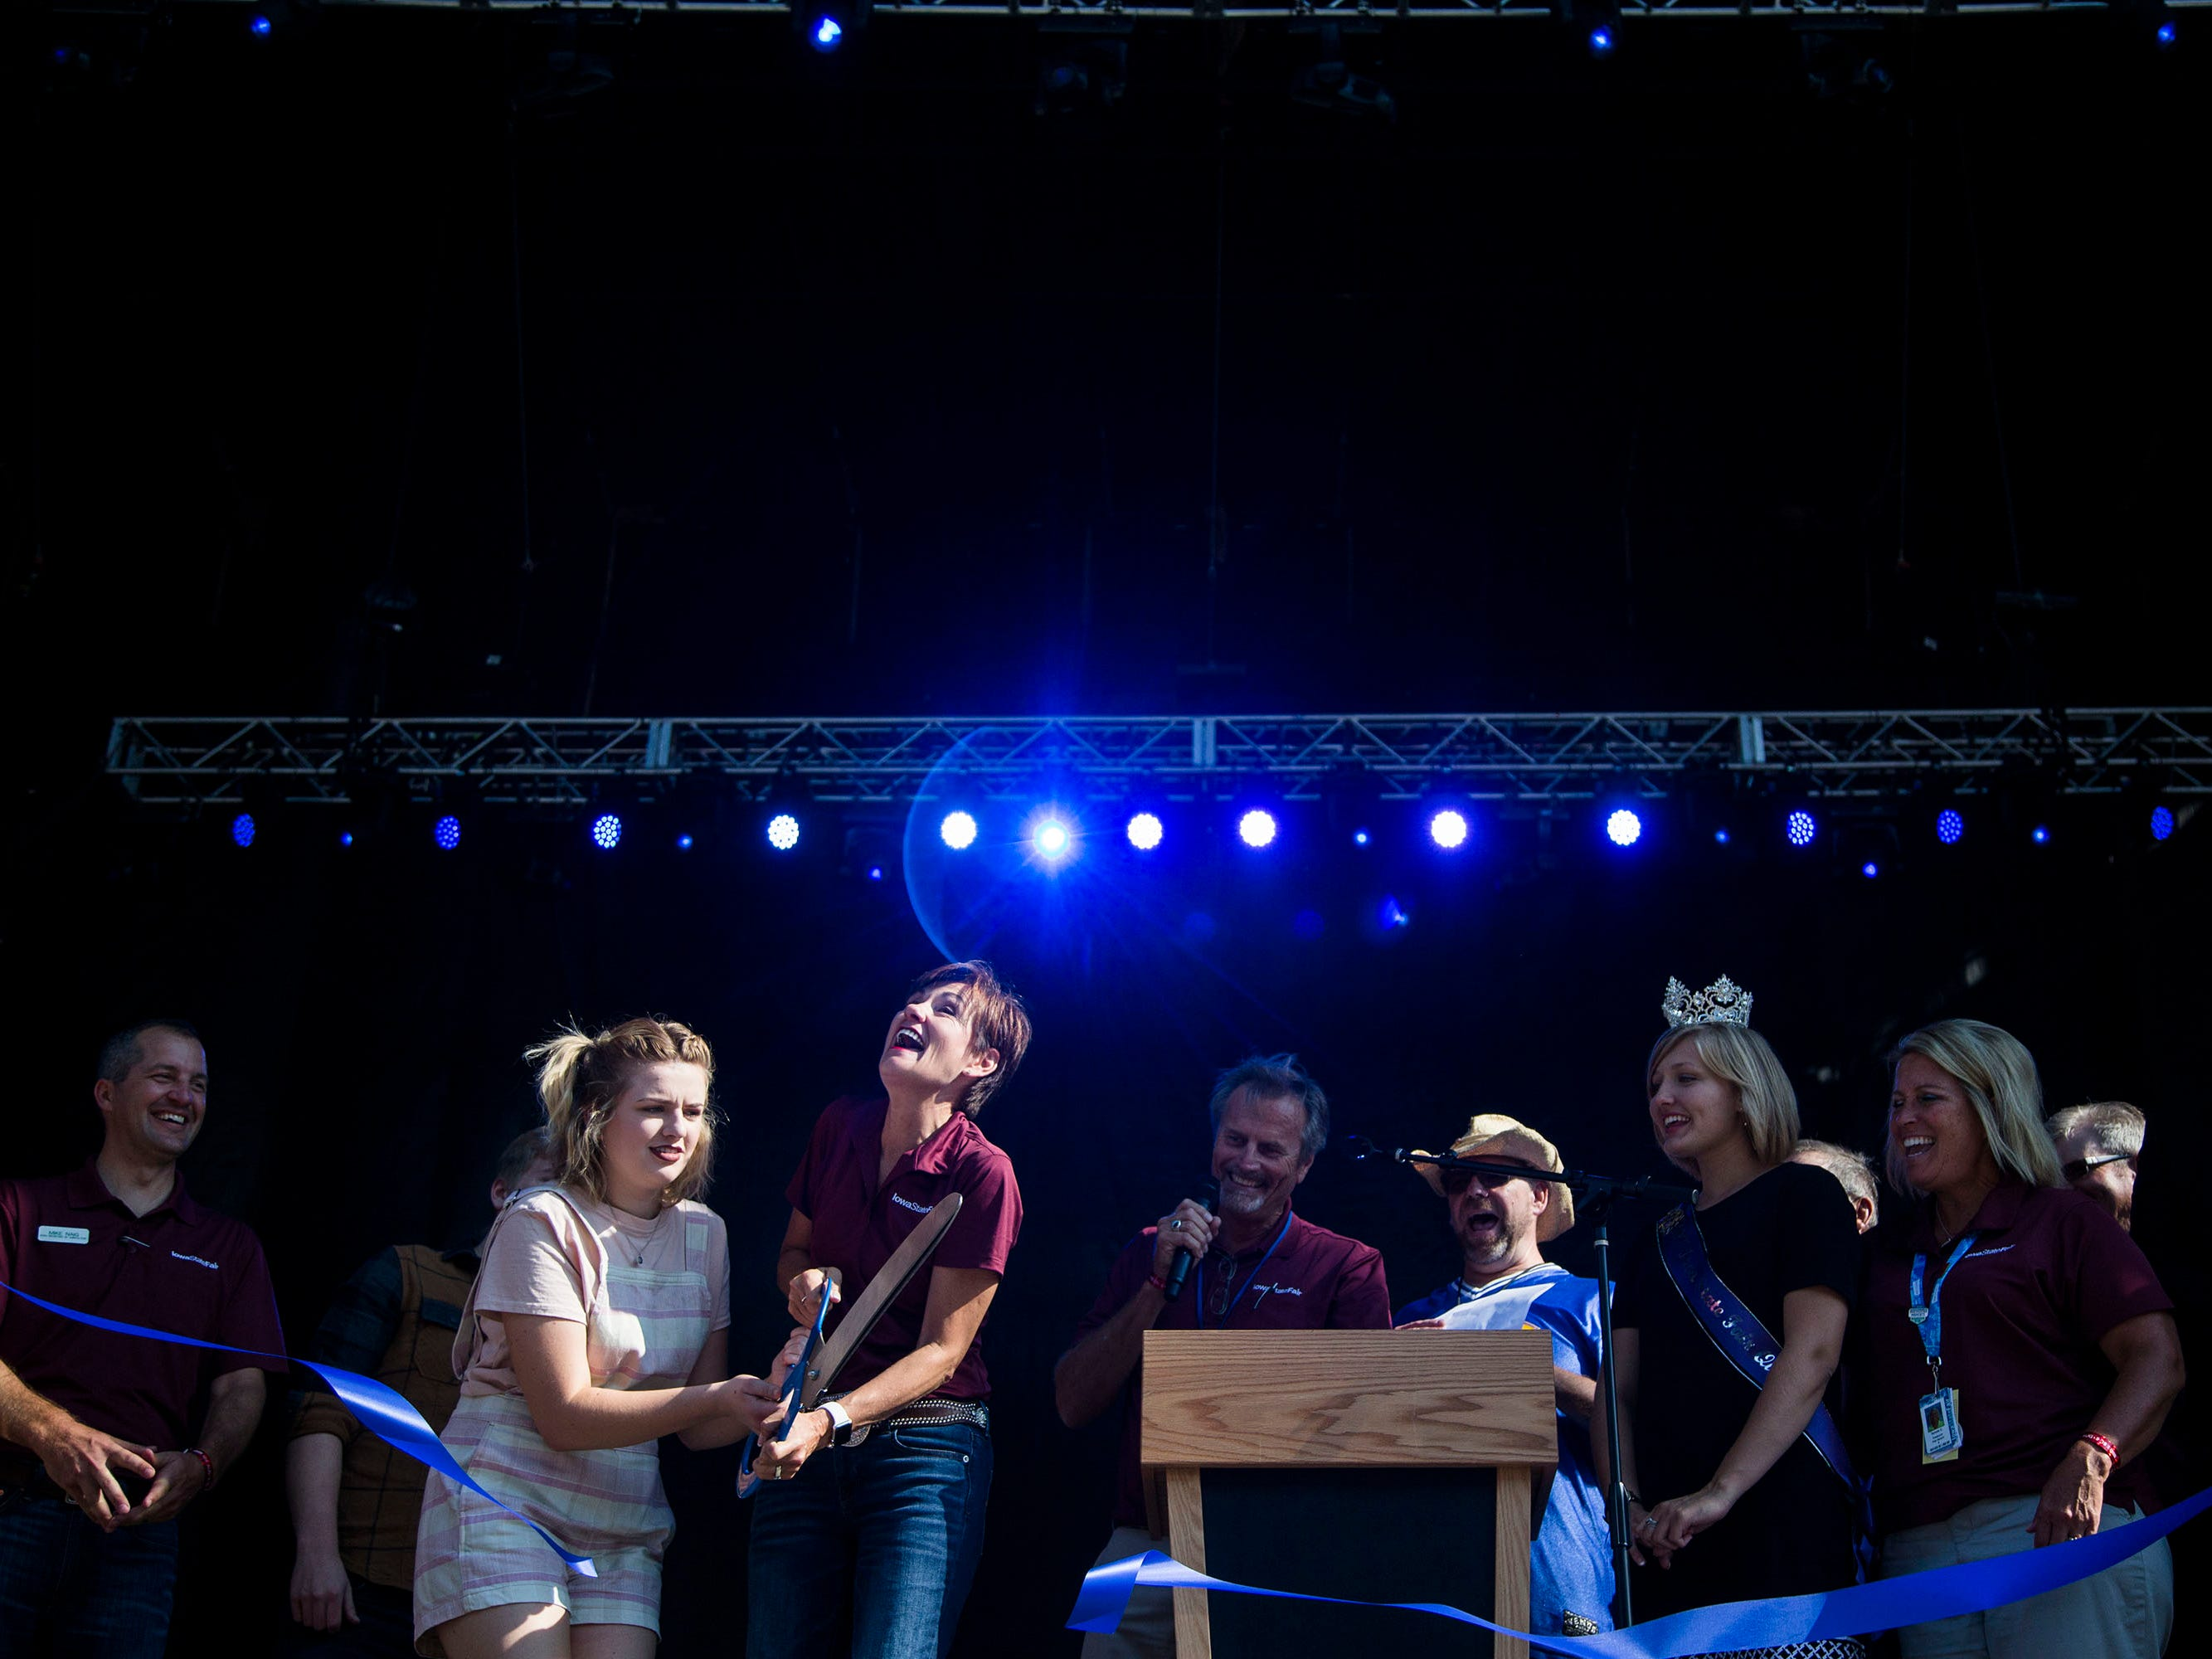 Iowa Governor Kim Reynolds and Maddie Poppe, winner of season 16 of American Idol and Iowa native, cut the ribbon of the updated Iowa State Fair grandstand during the opening ceremonies for the state fair on Thursday, August 9, 2018, in Des Moines.